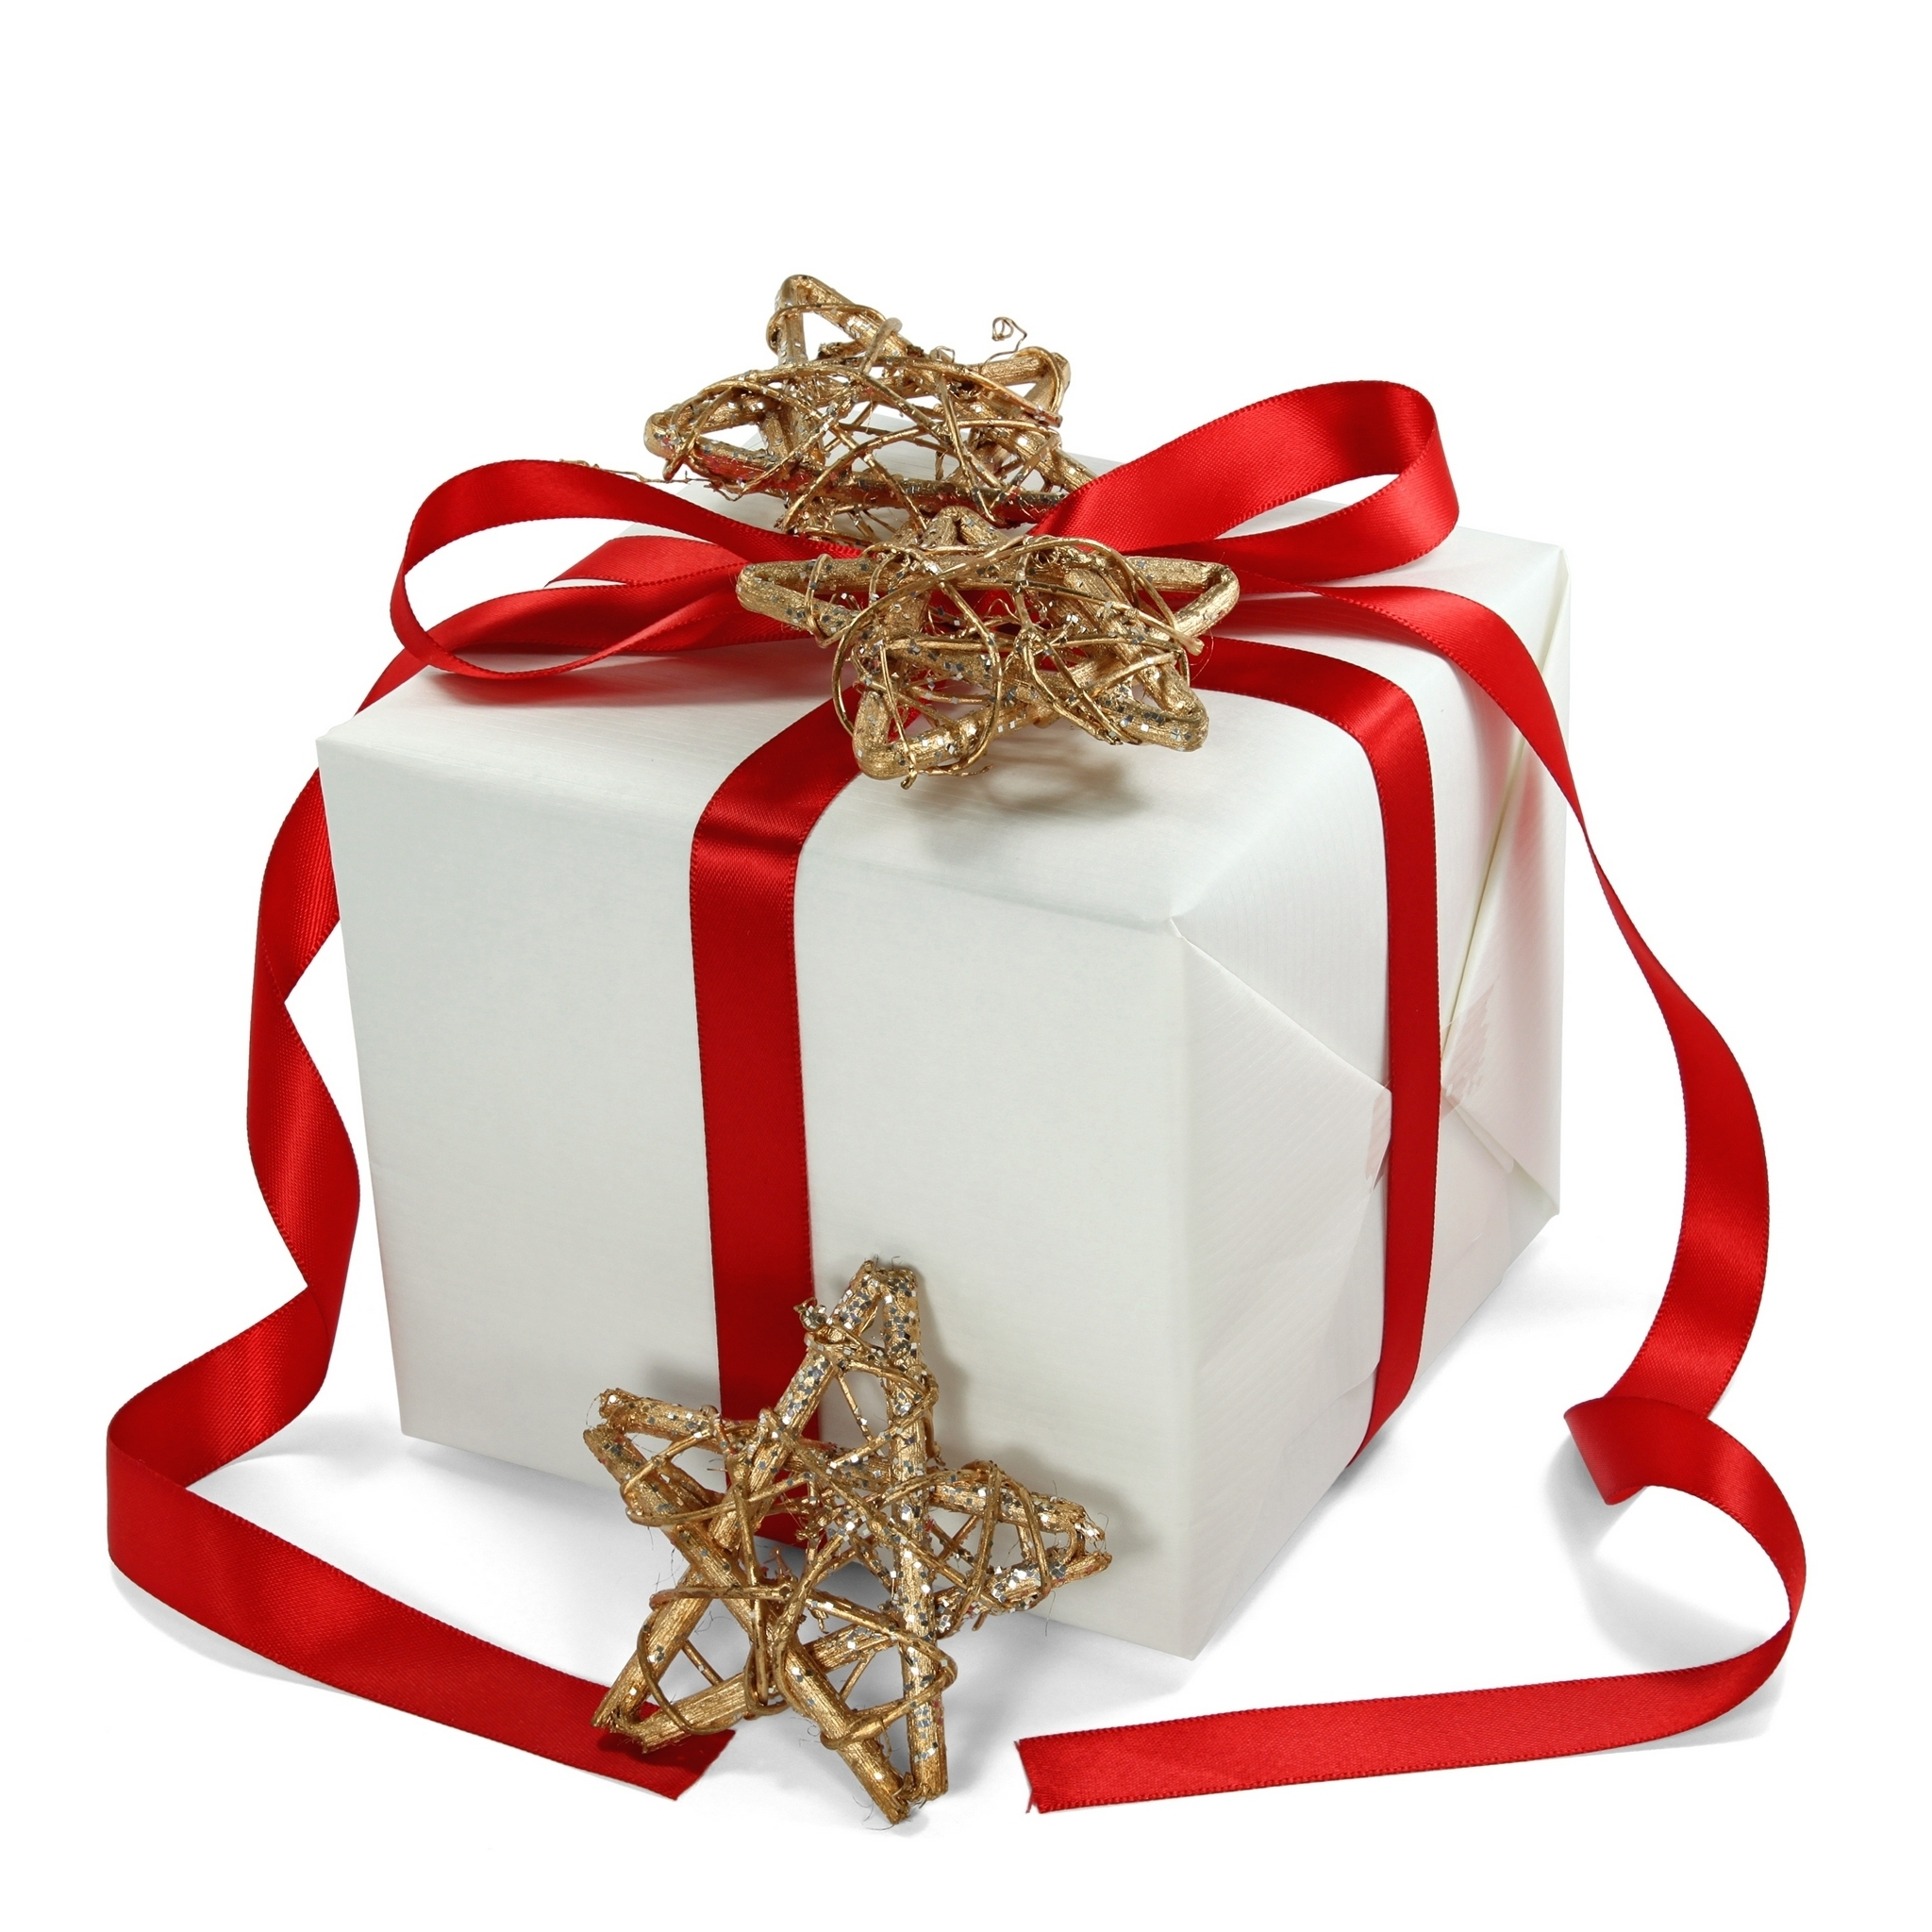 Free My 3d Christmas Tree Animated Wallpaper Pictures Of Christmas Gifts Cliparts Co